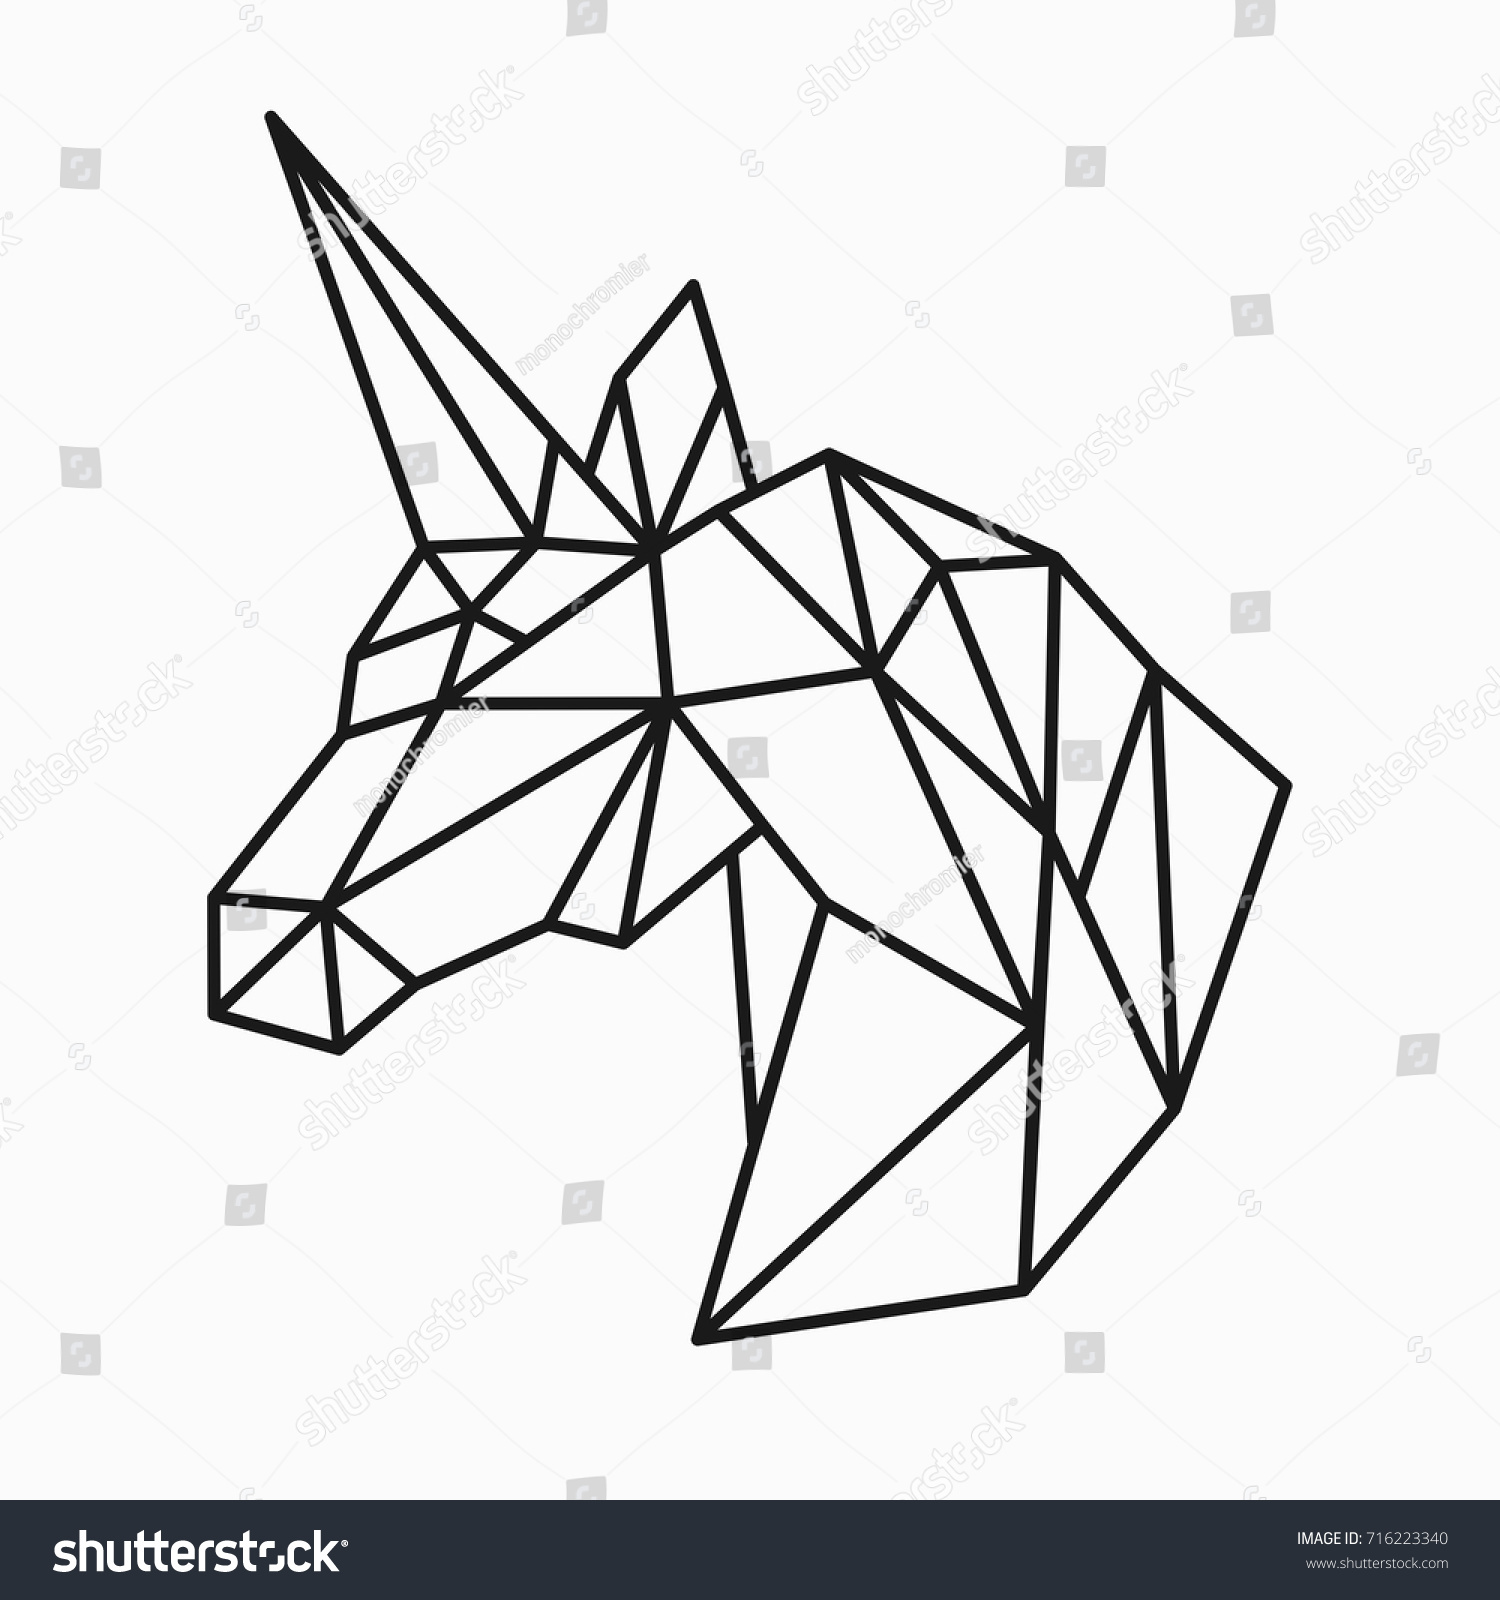 Vector Polygonal Triangular Illustration Animal Head Stock ... - photo#45